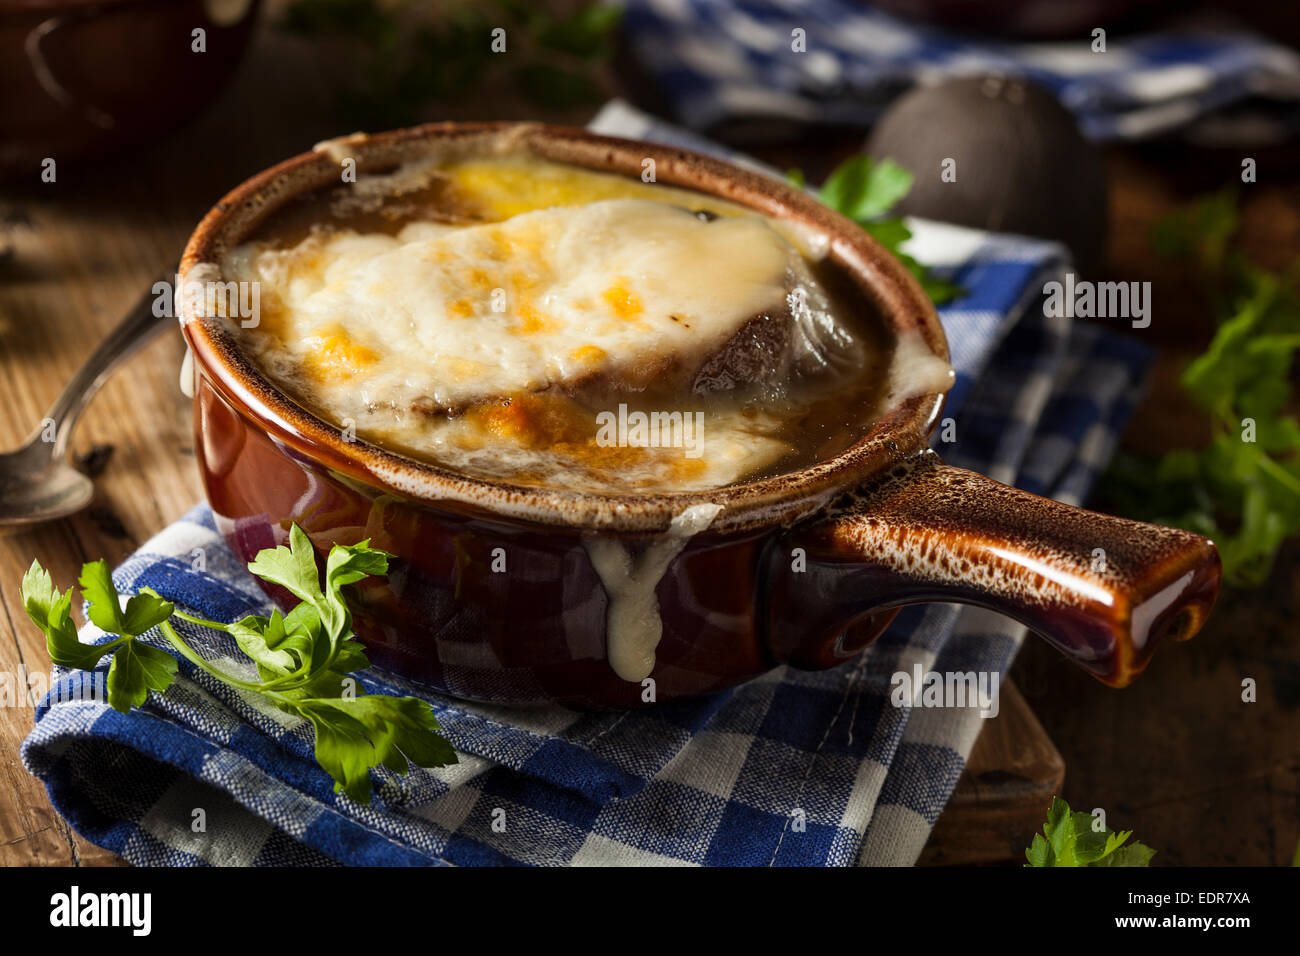 Homemade French Onion Soup with Cheese and Toast - Stock Image